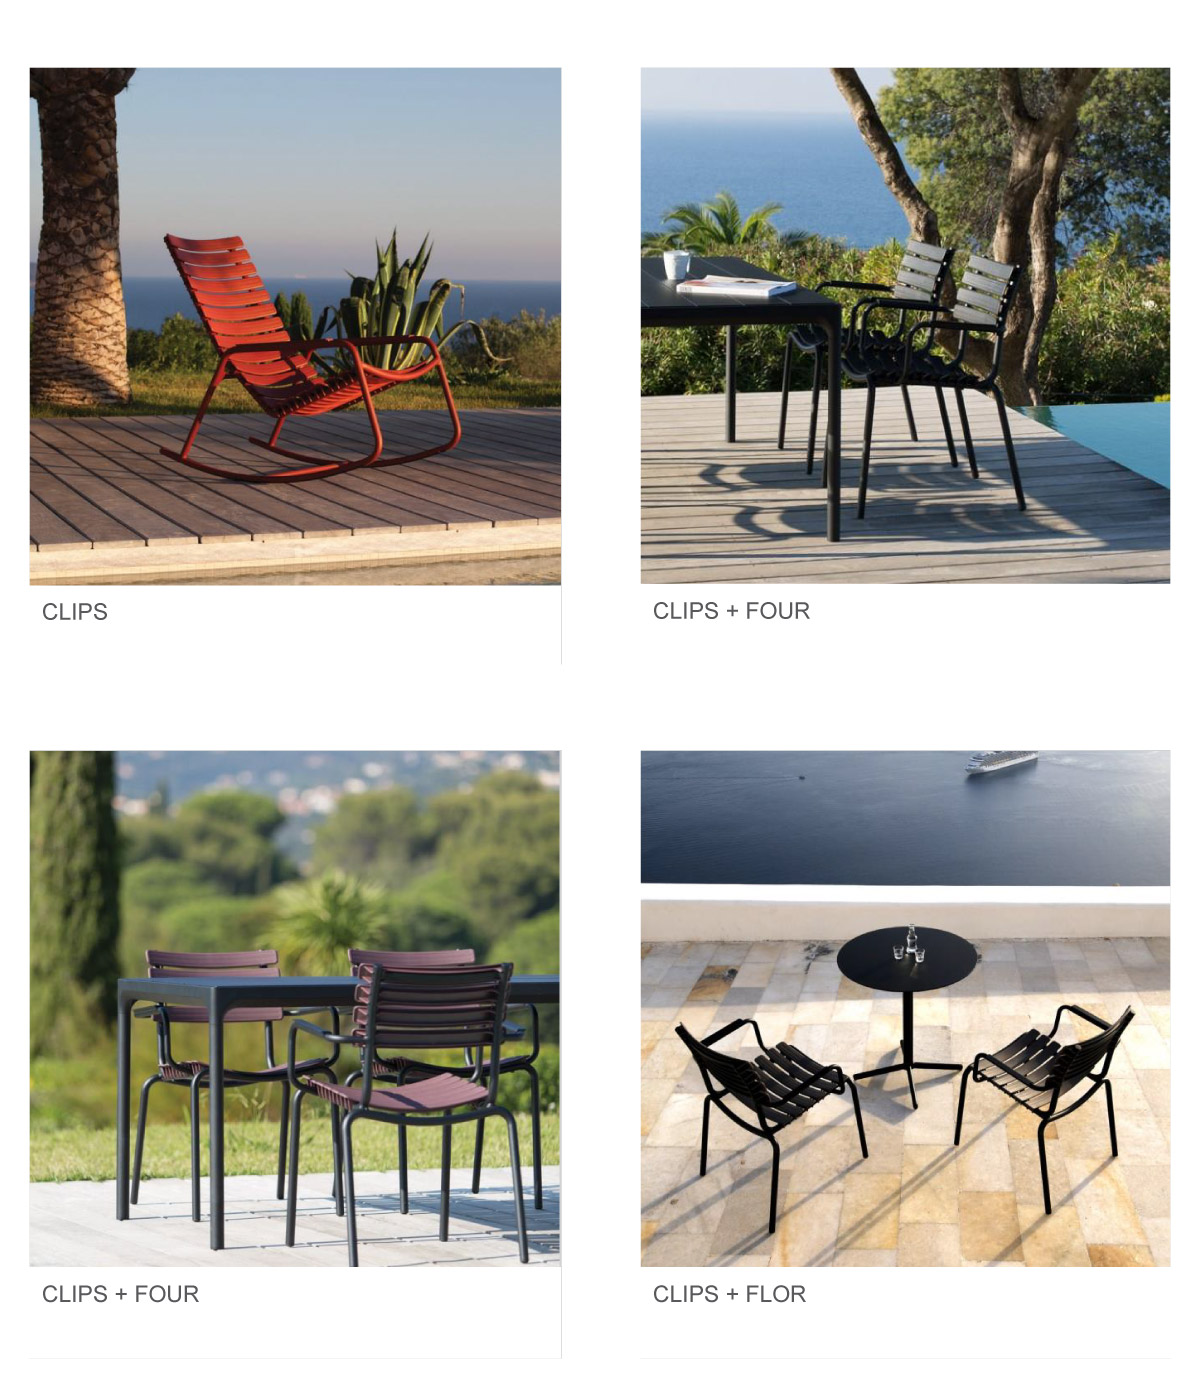 Houe Outdoor Furniture Collection at P5 Studio